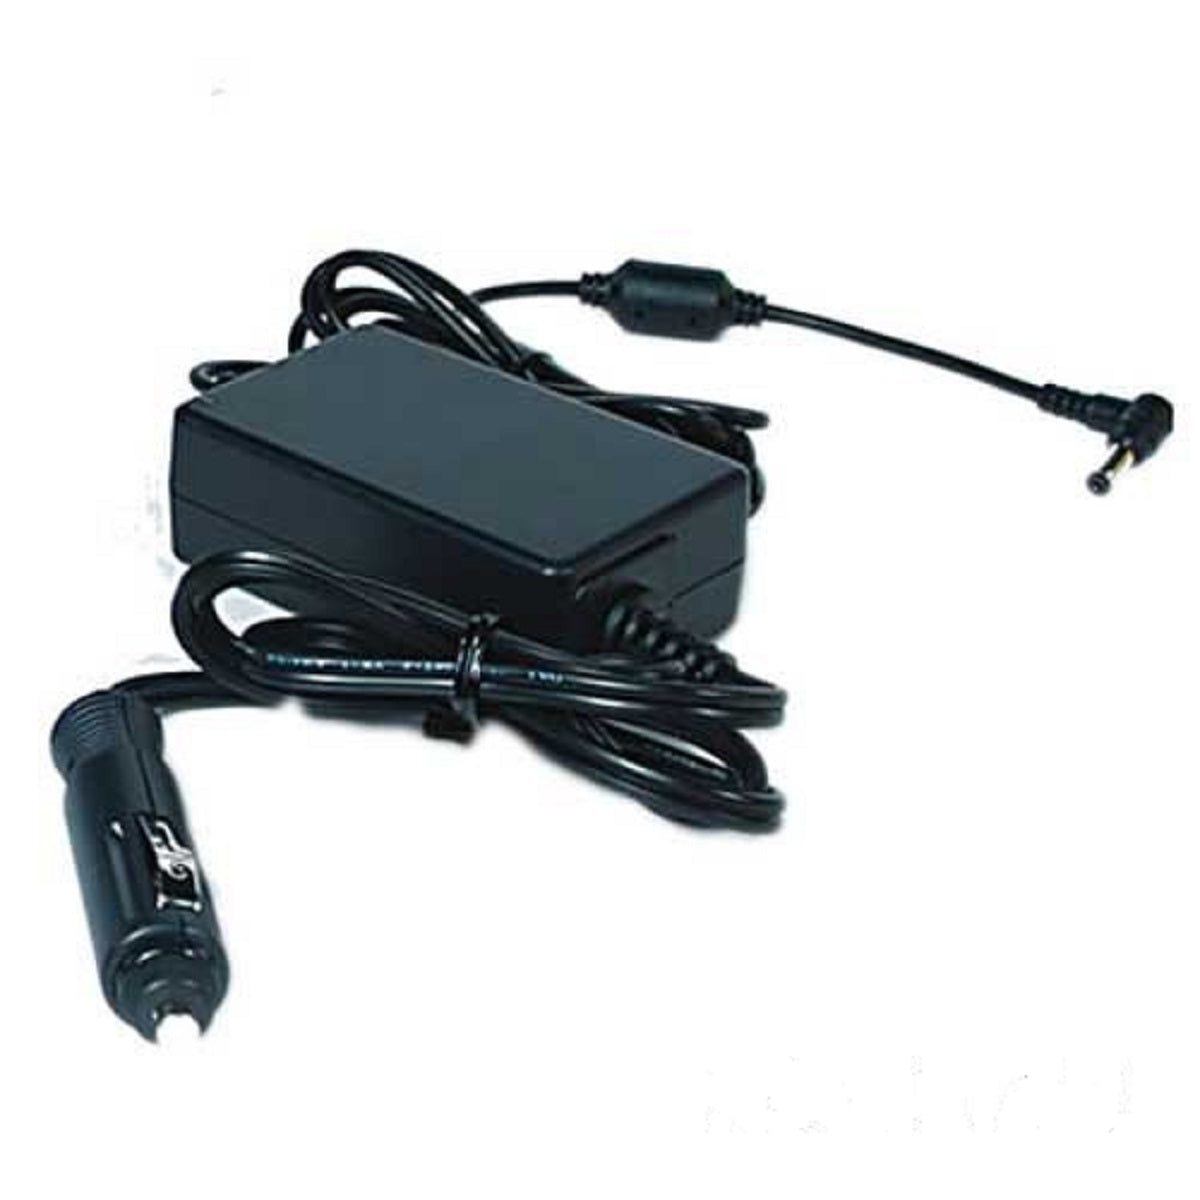 Invacare Platinum Portable DC CHARGER